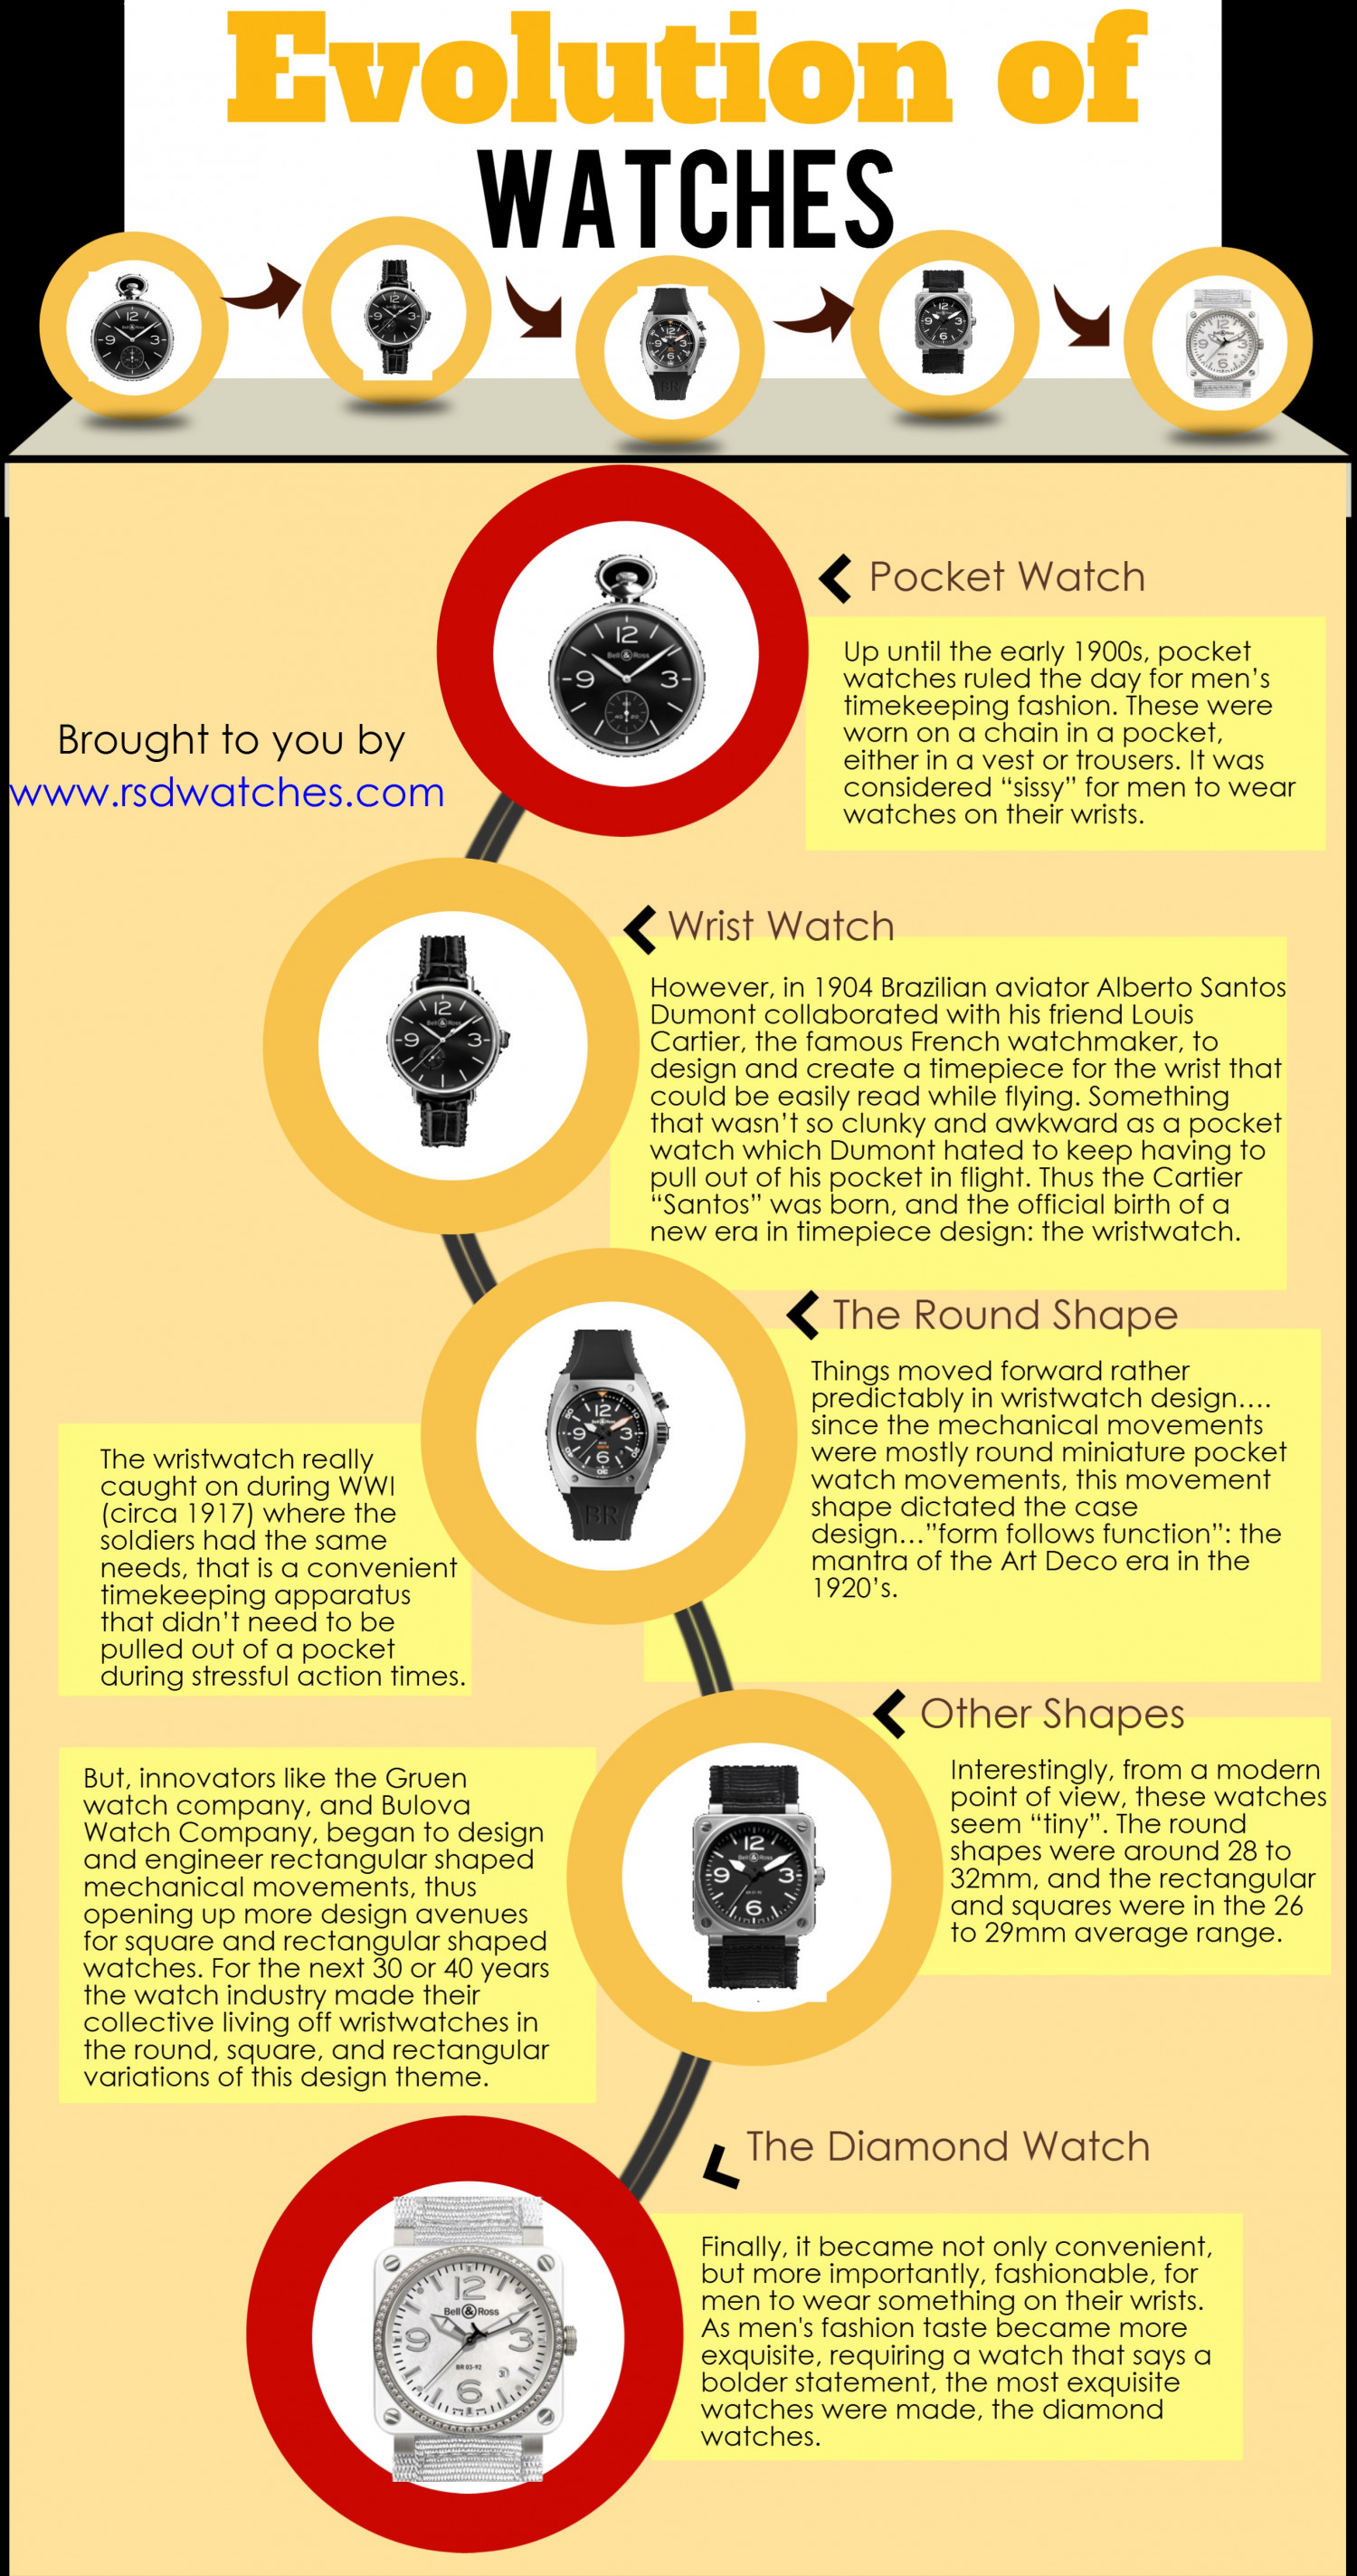 Evolution of Watches Infographic